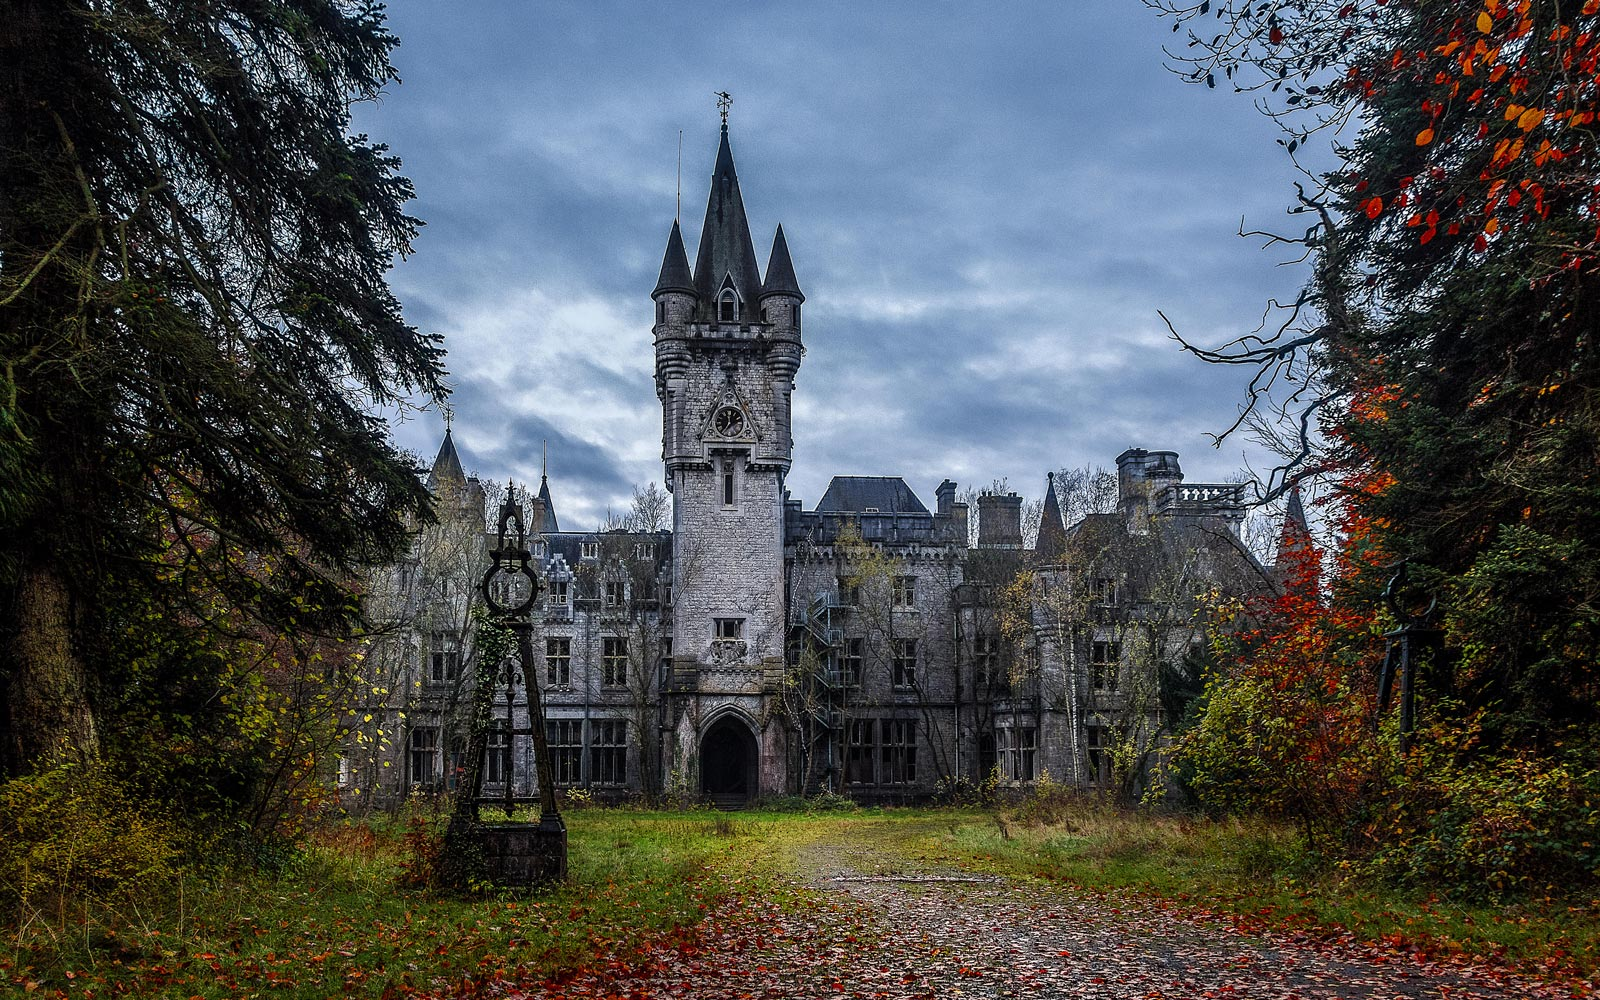 7 Of The Most Haunted Locations In Europe That Are Well Worth A Visit